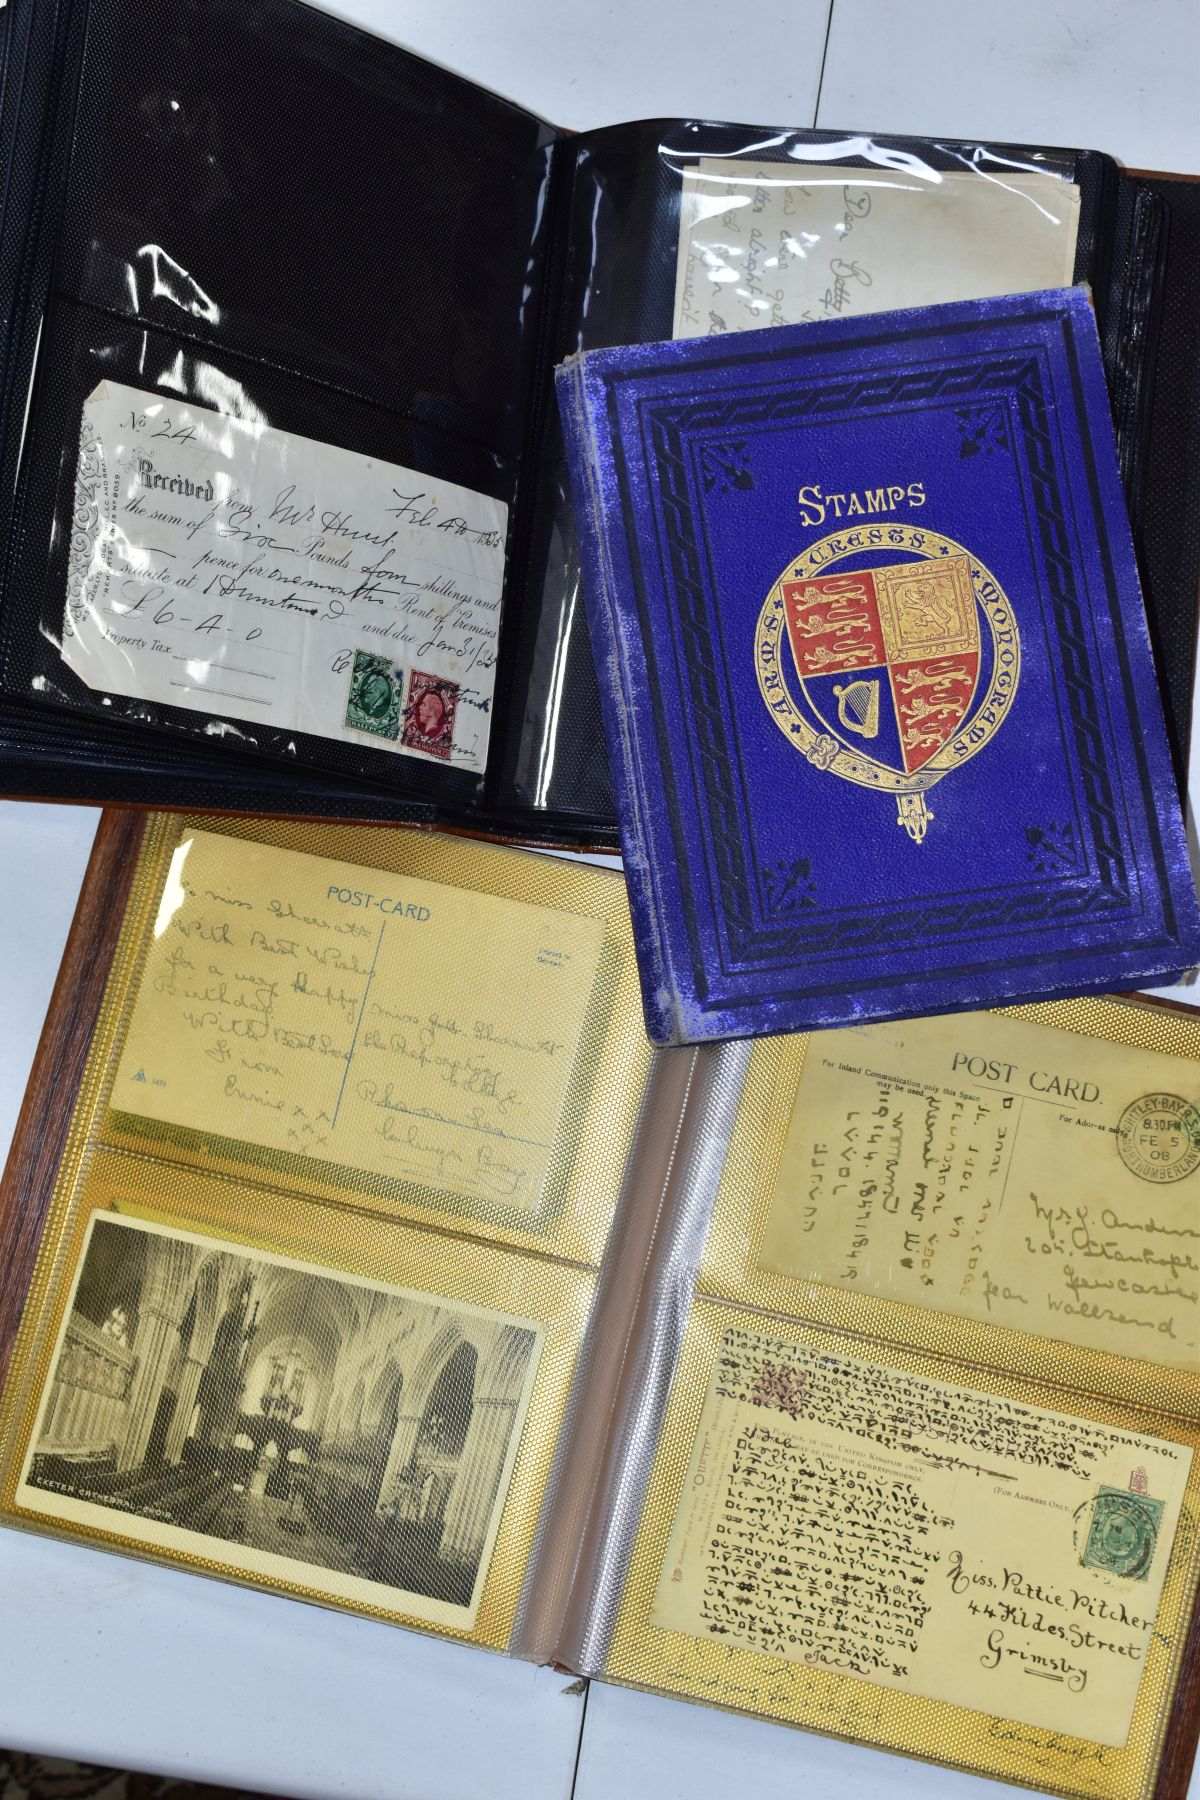 EPHEMERA AND POSTAL HISTORY, three albums containing an unusual collection of Arms and Crests, - Image 5 of 8